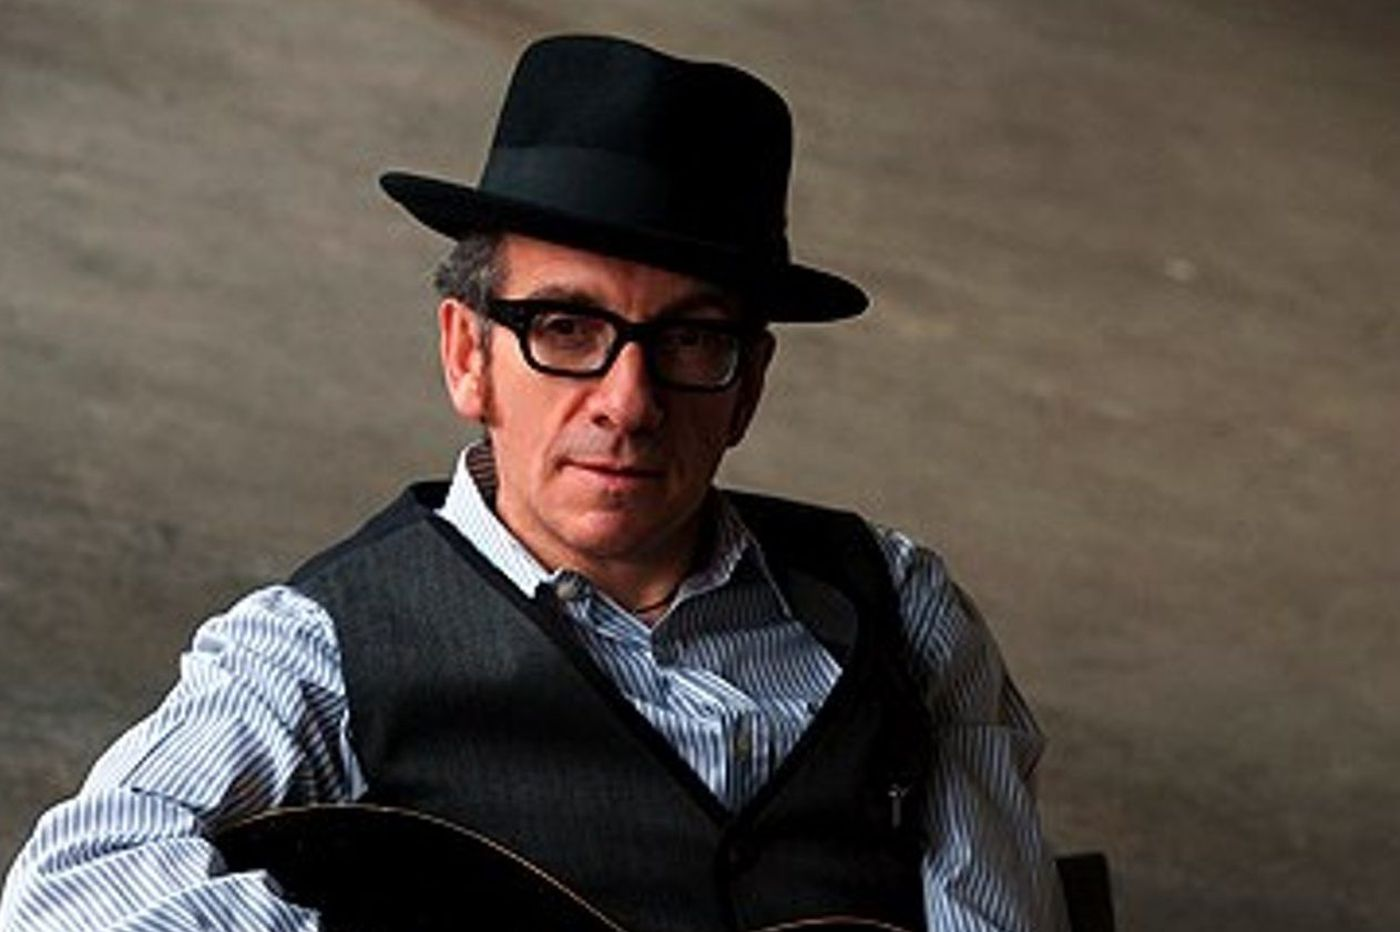 Elvis Costello is recovering from successful cancer surgery. And he's coming to Atlantic City this fall